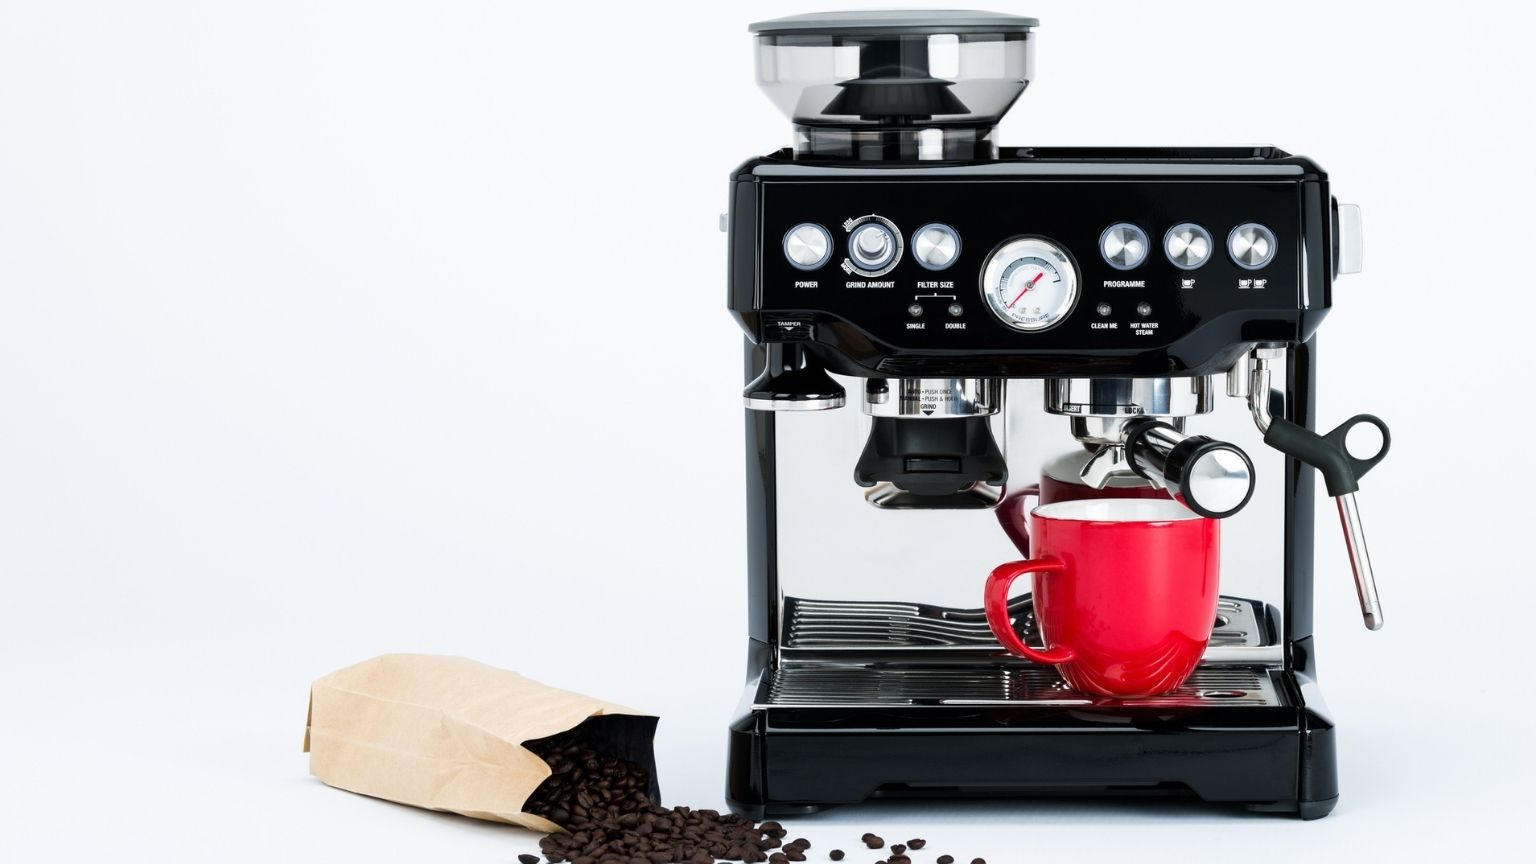 coffee maker with grinder and red coffee mug